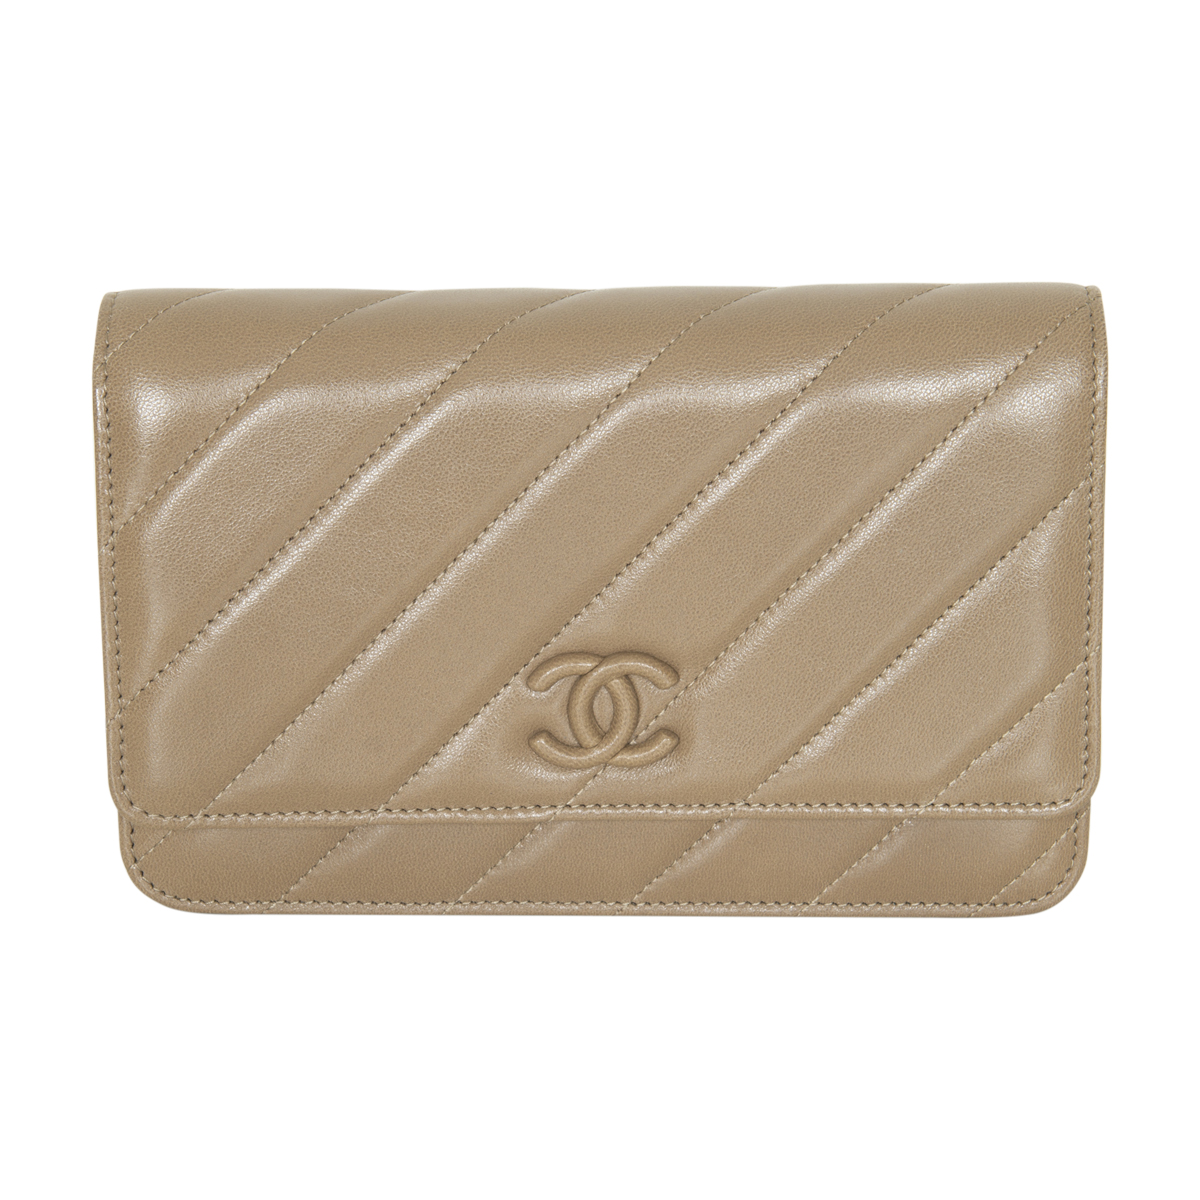 Chanel Leather Wallet On Chain – New Condition